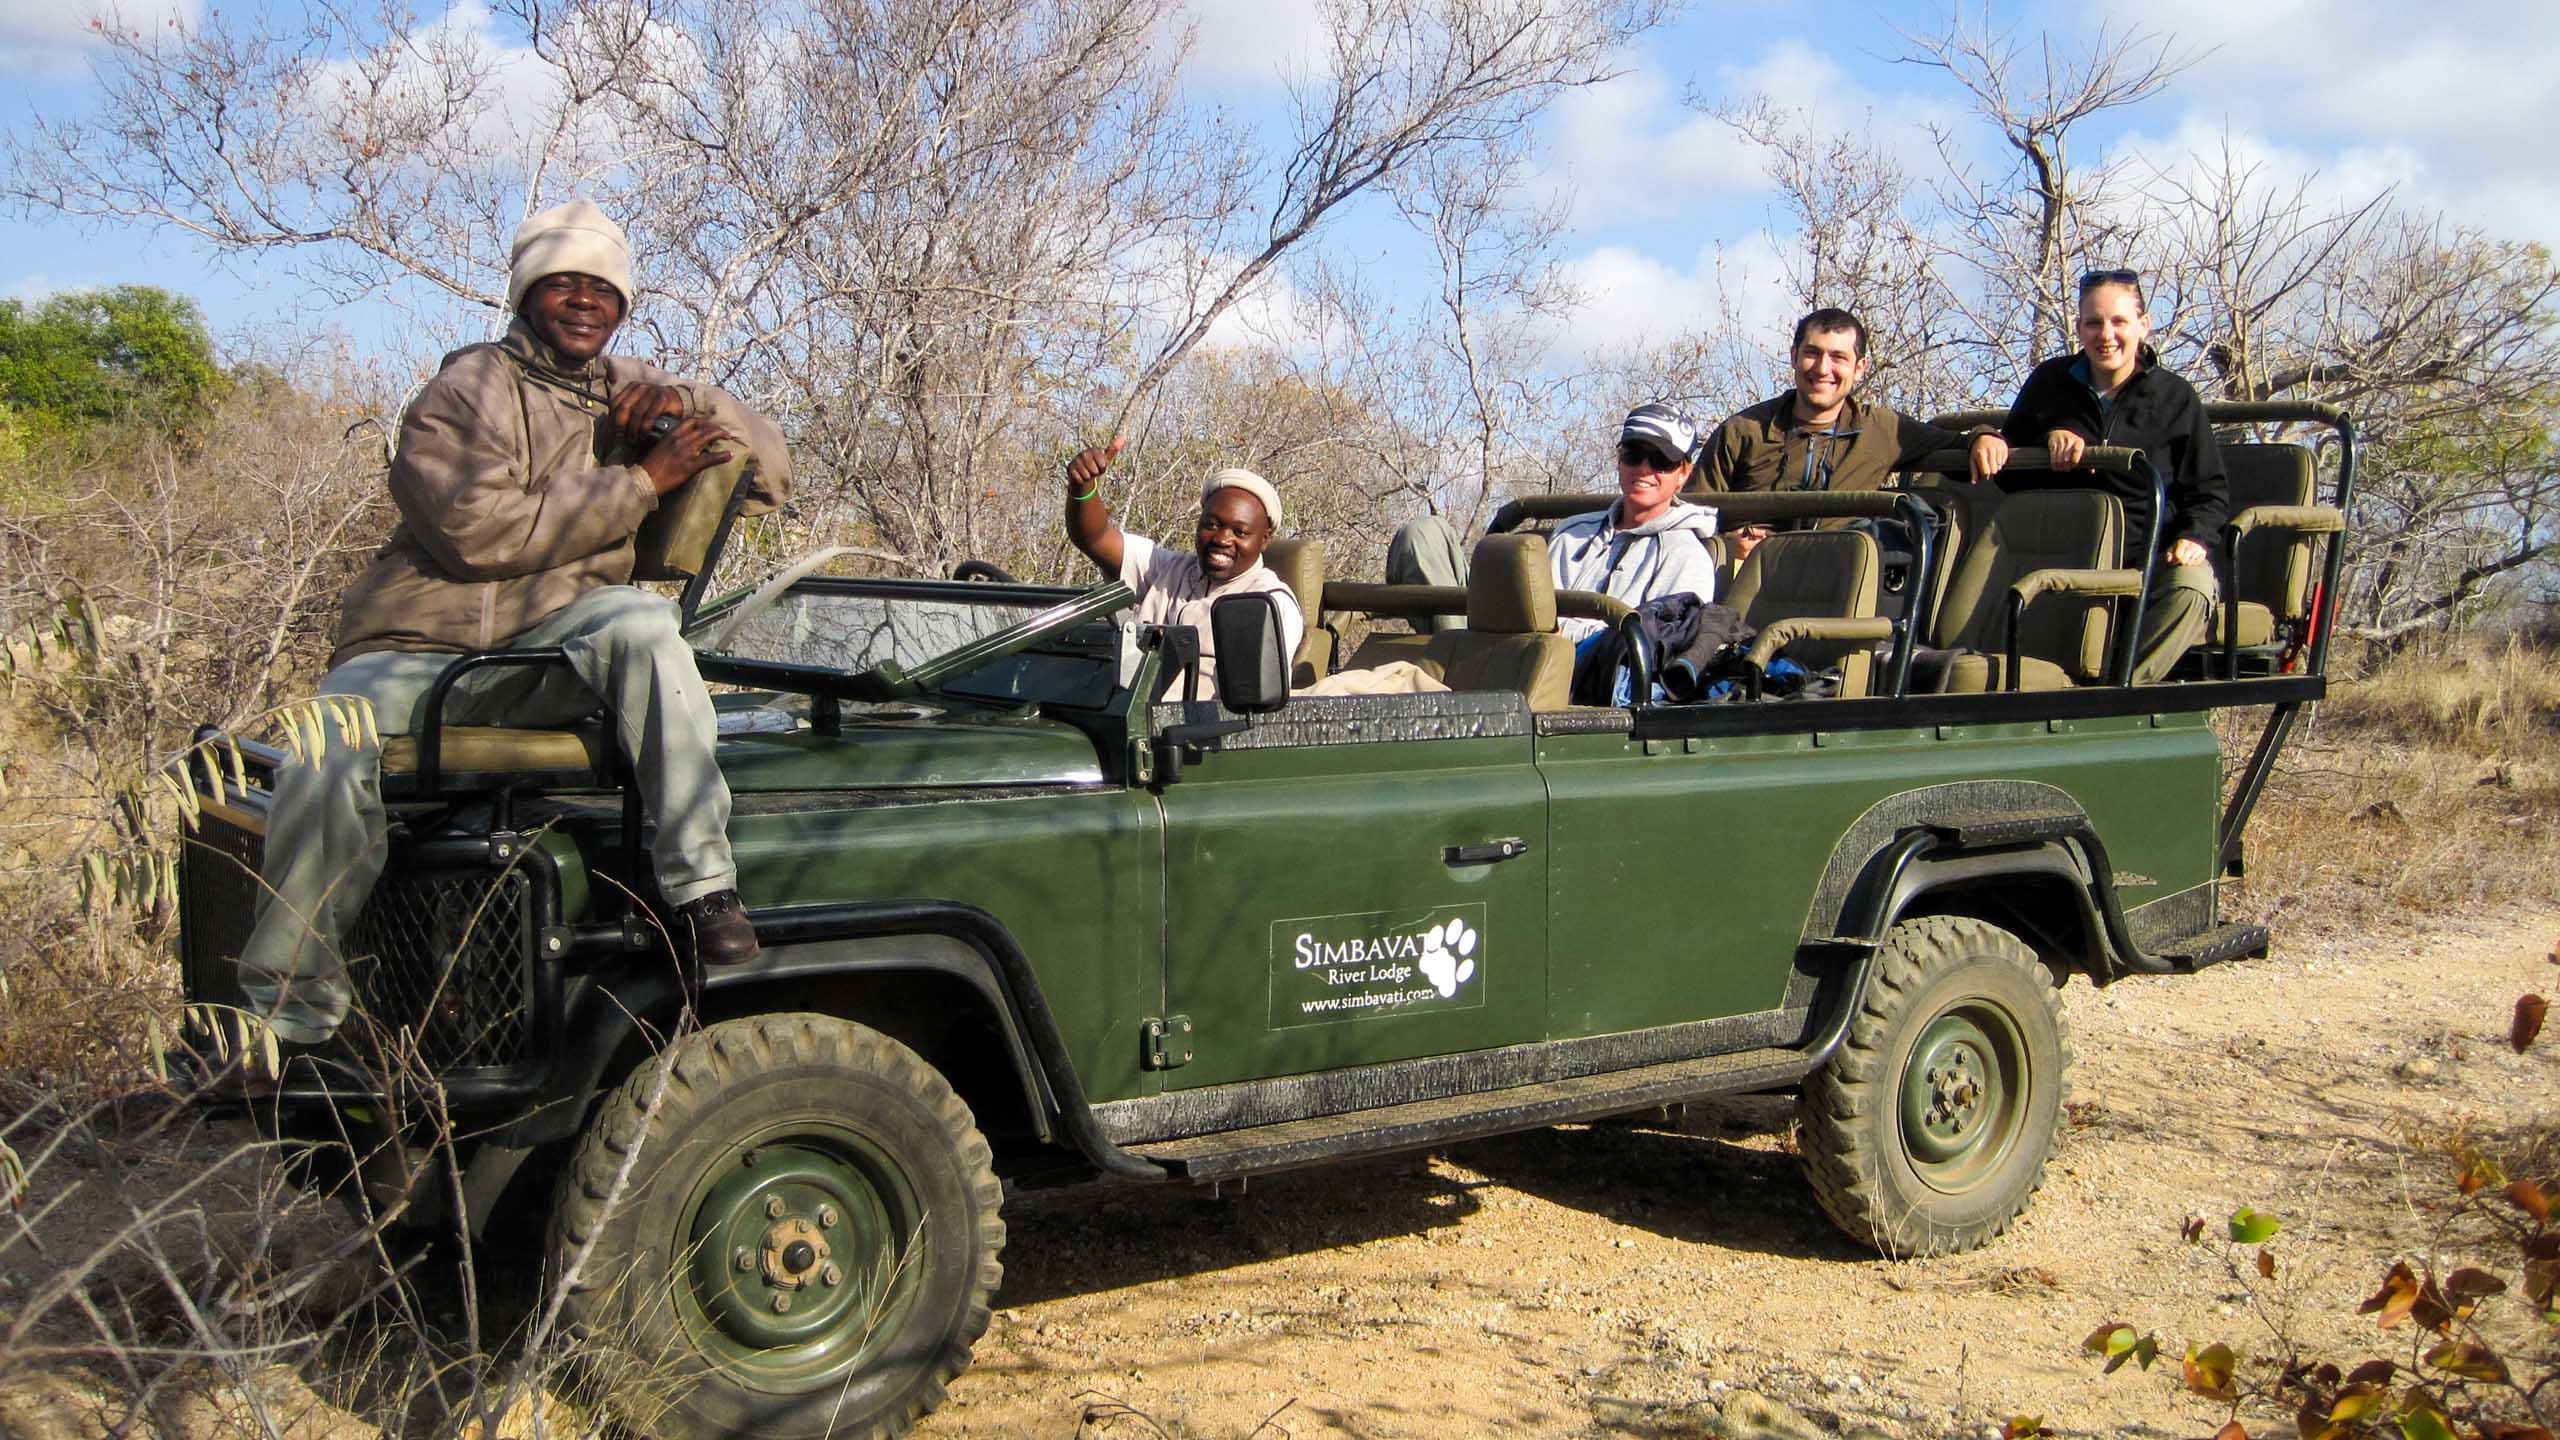 South Africa open vehicle safari group